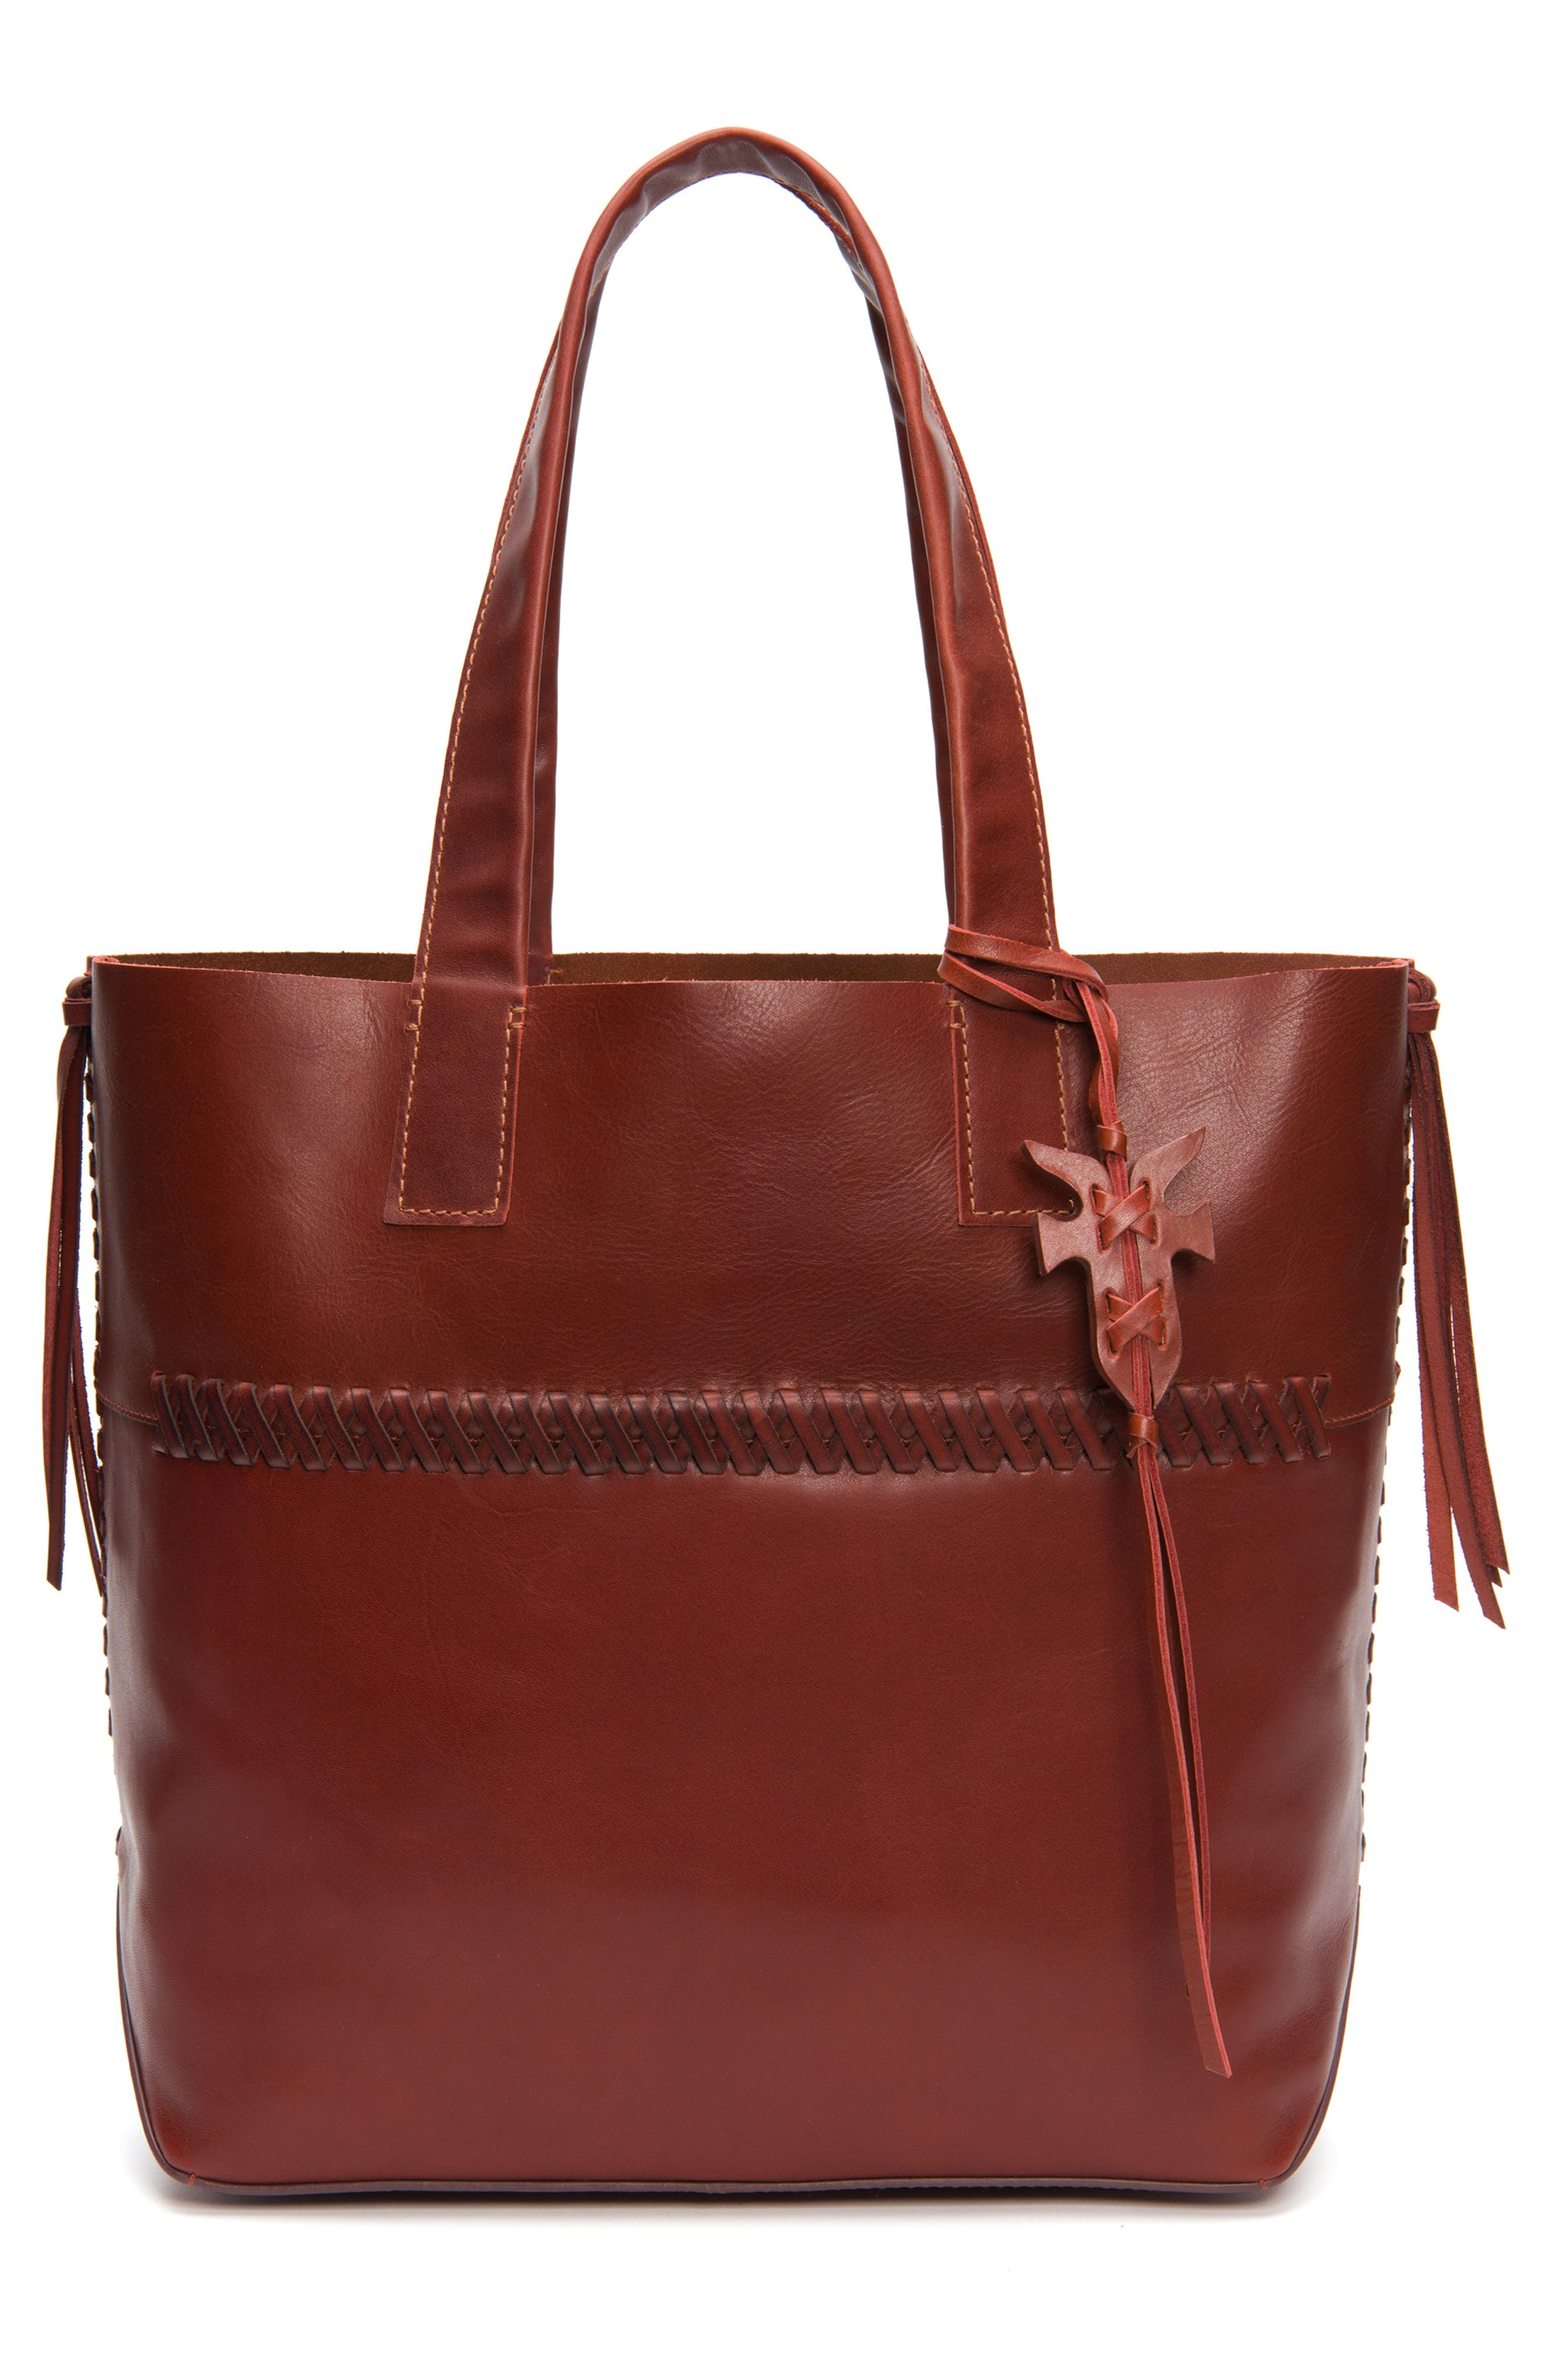 CARSON WHIPSTITCH CALFSKIN LEATHER TOTE - RED